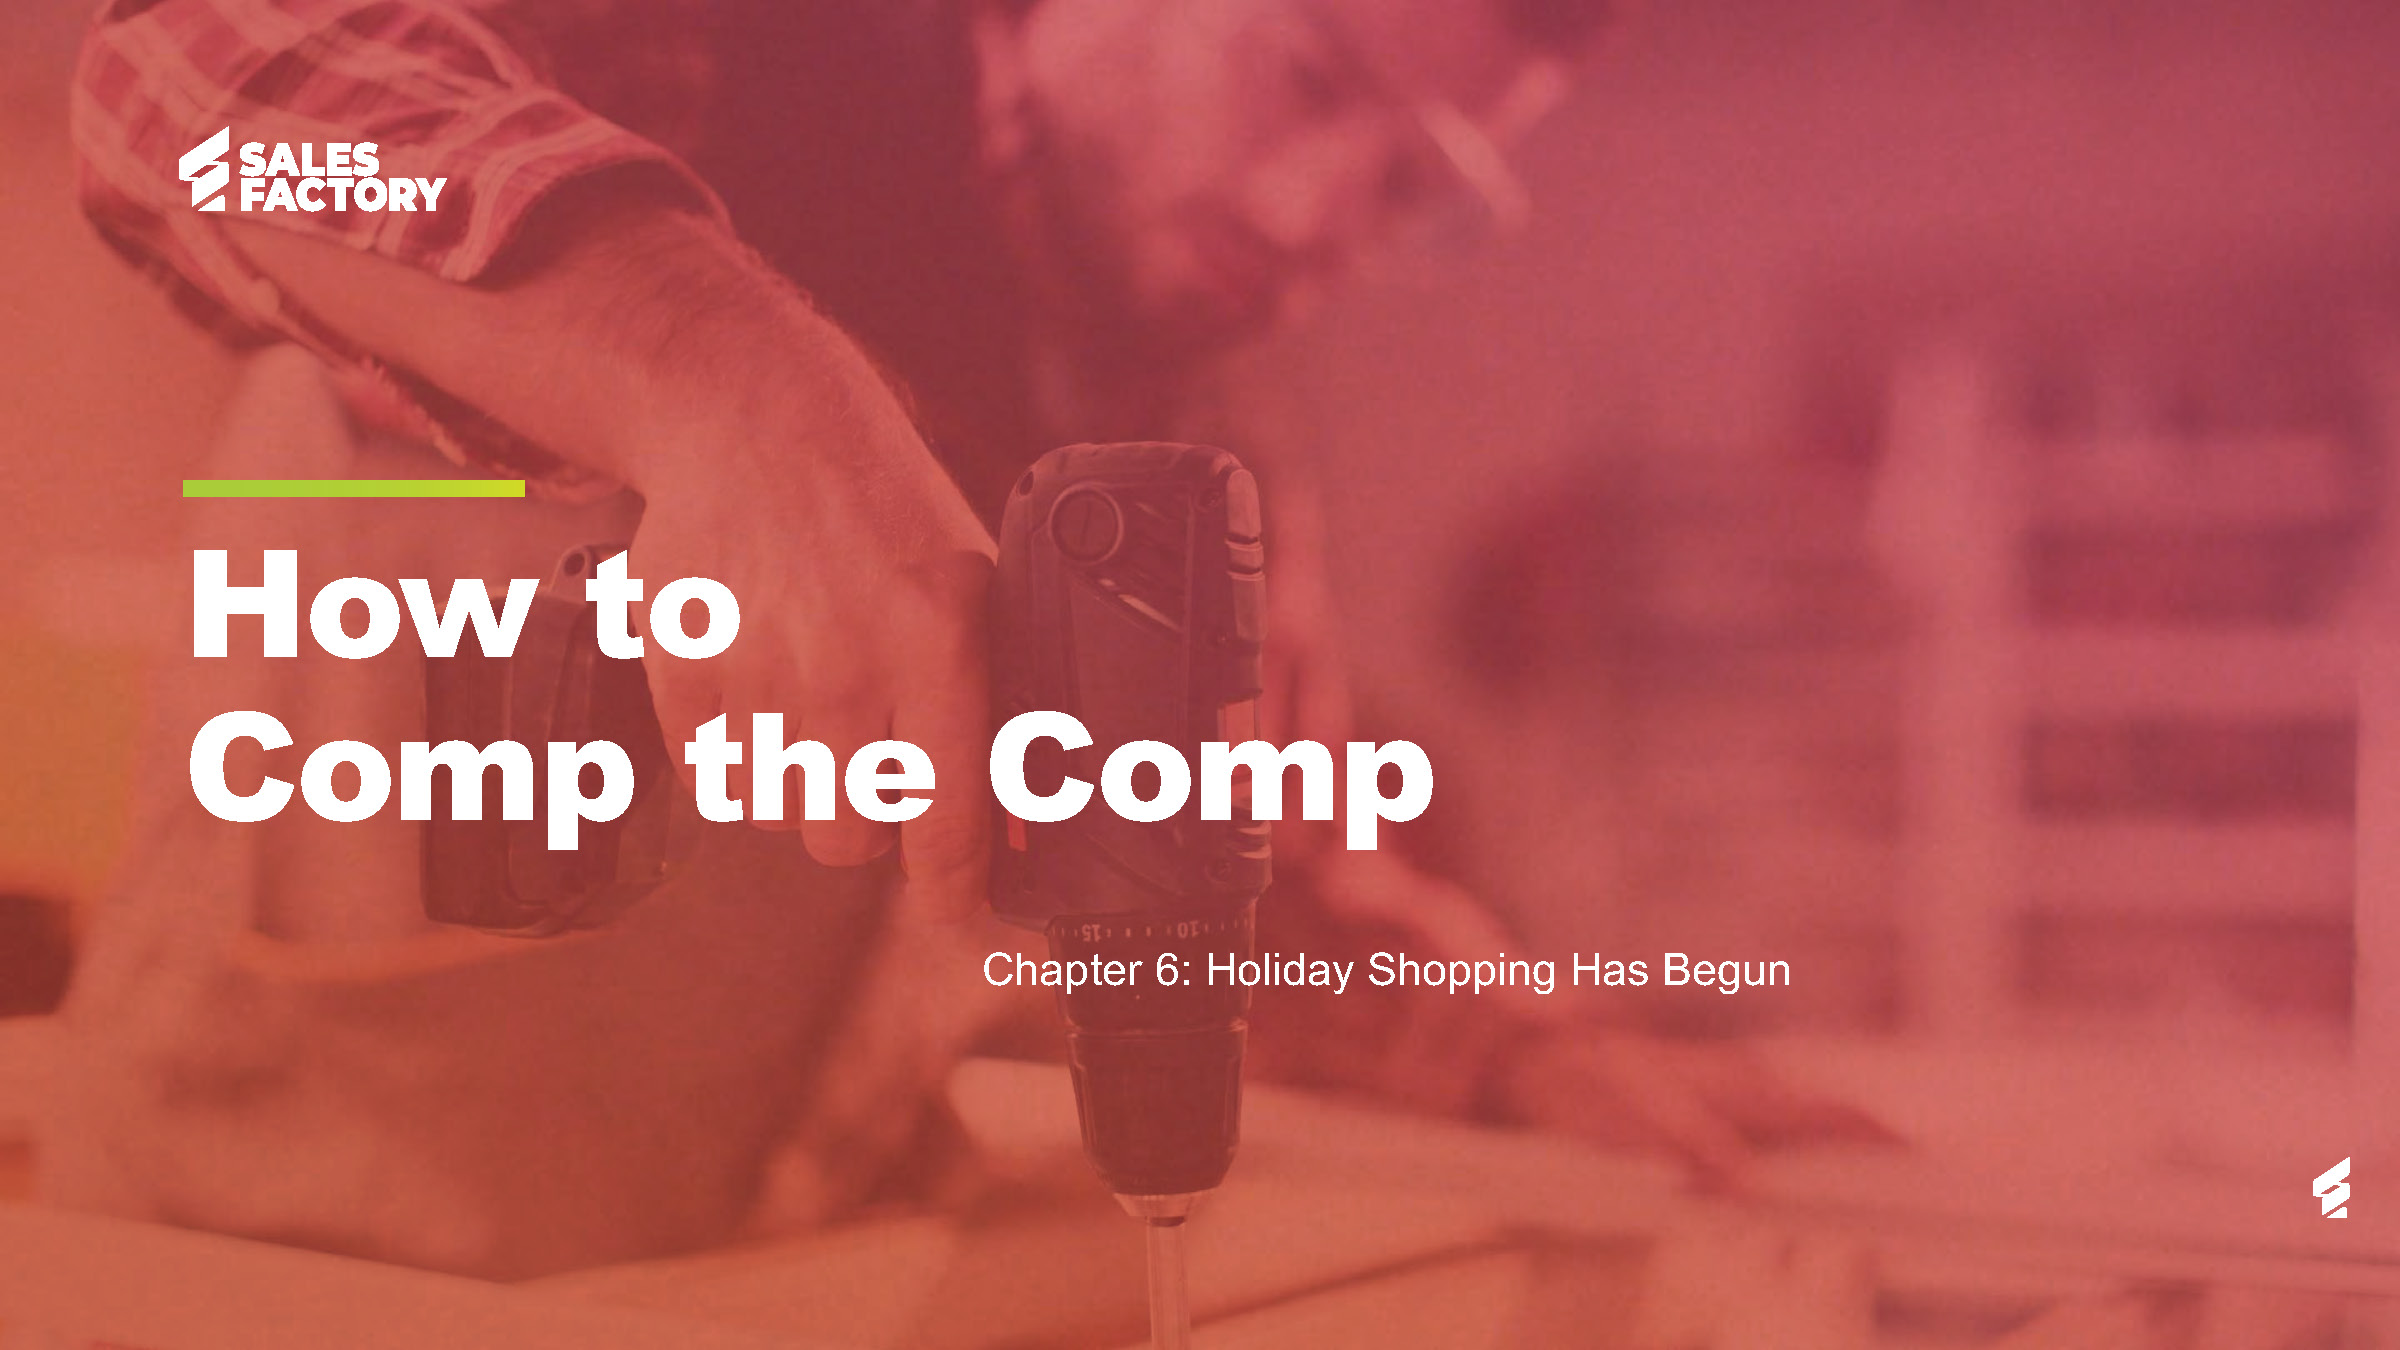 SalesFactory_CompTheComp_Chapter6_cover